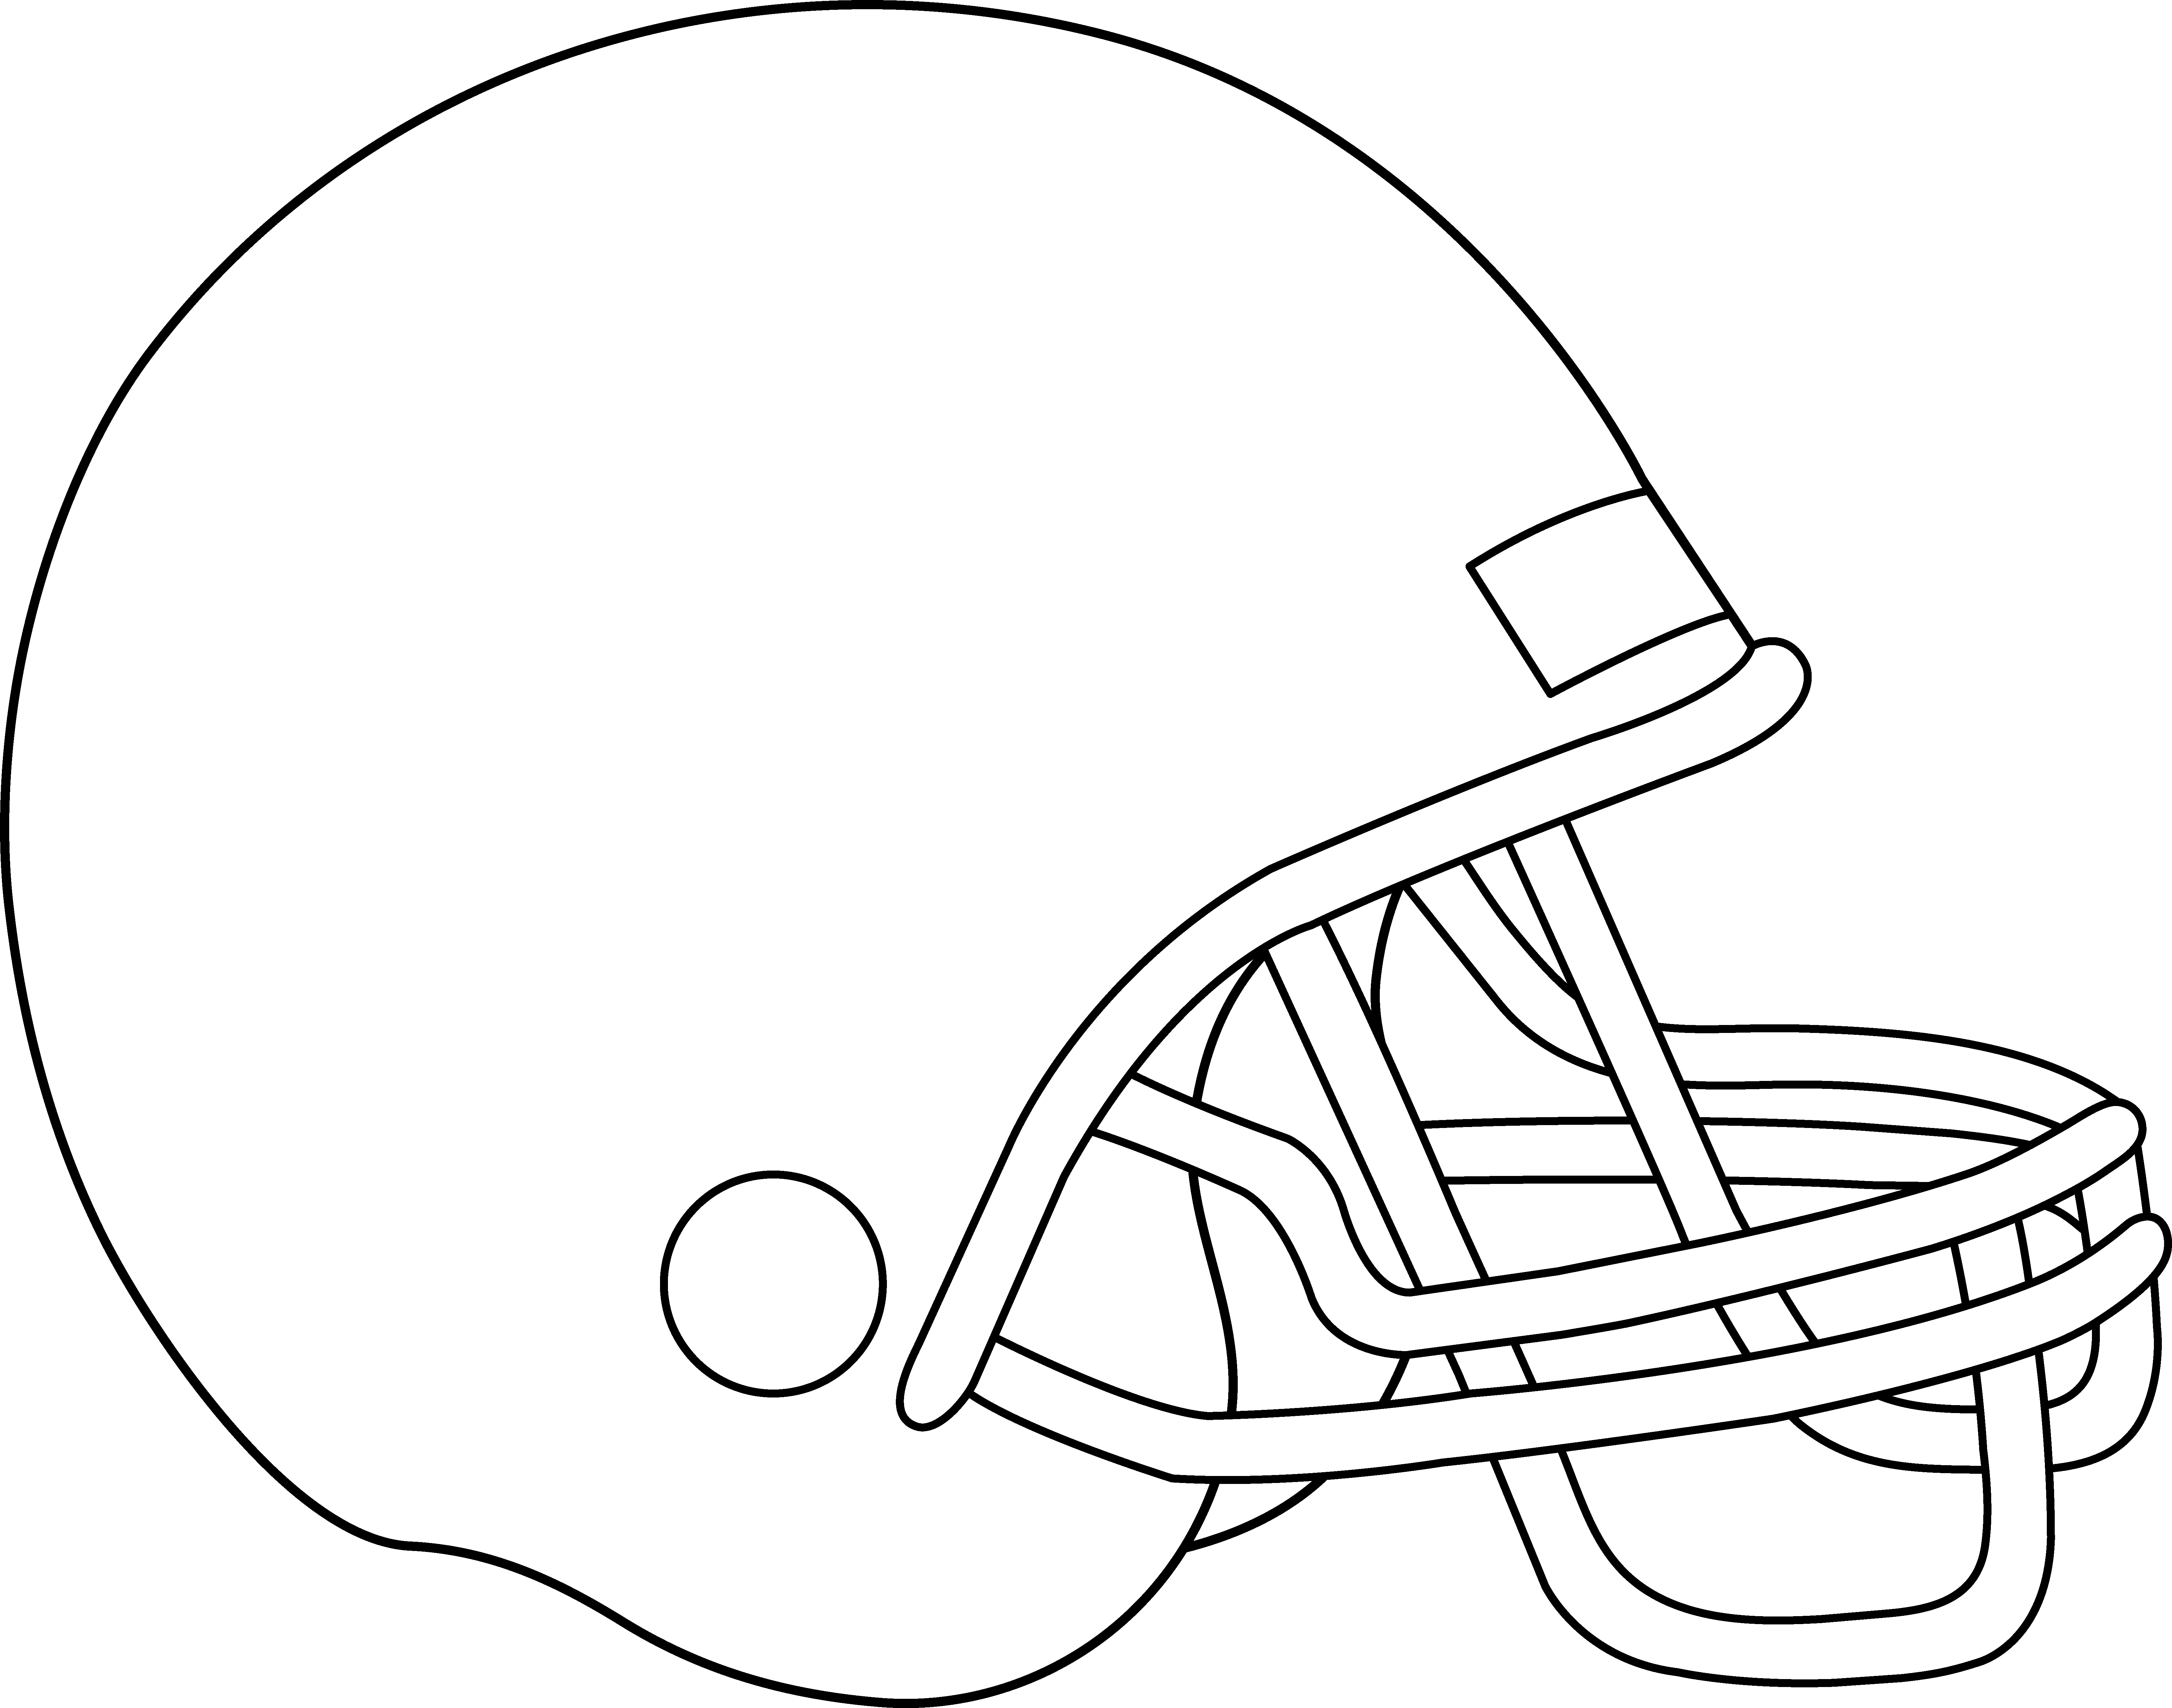 clipart info - Football Helmet Coloring Pages